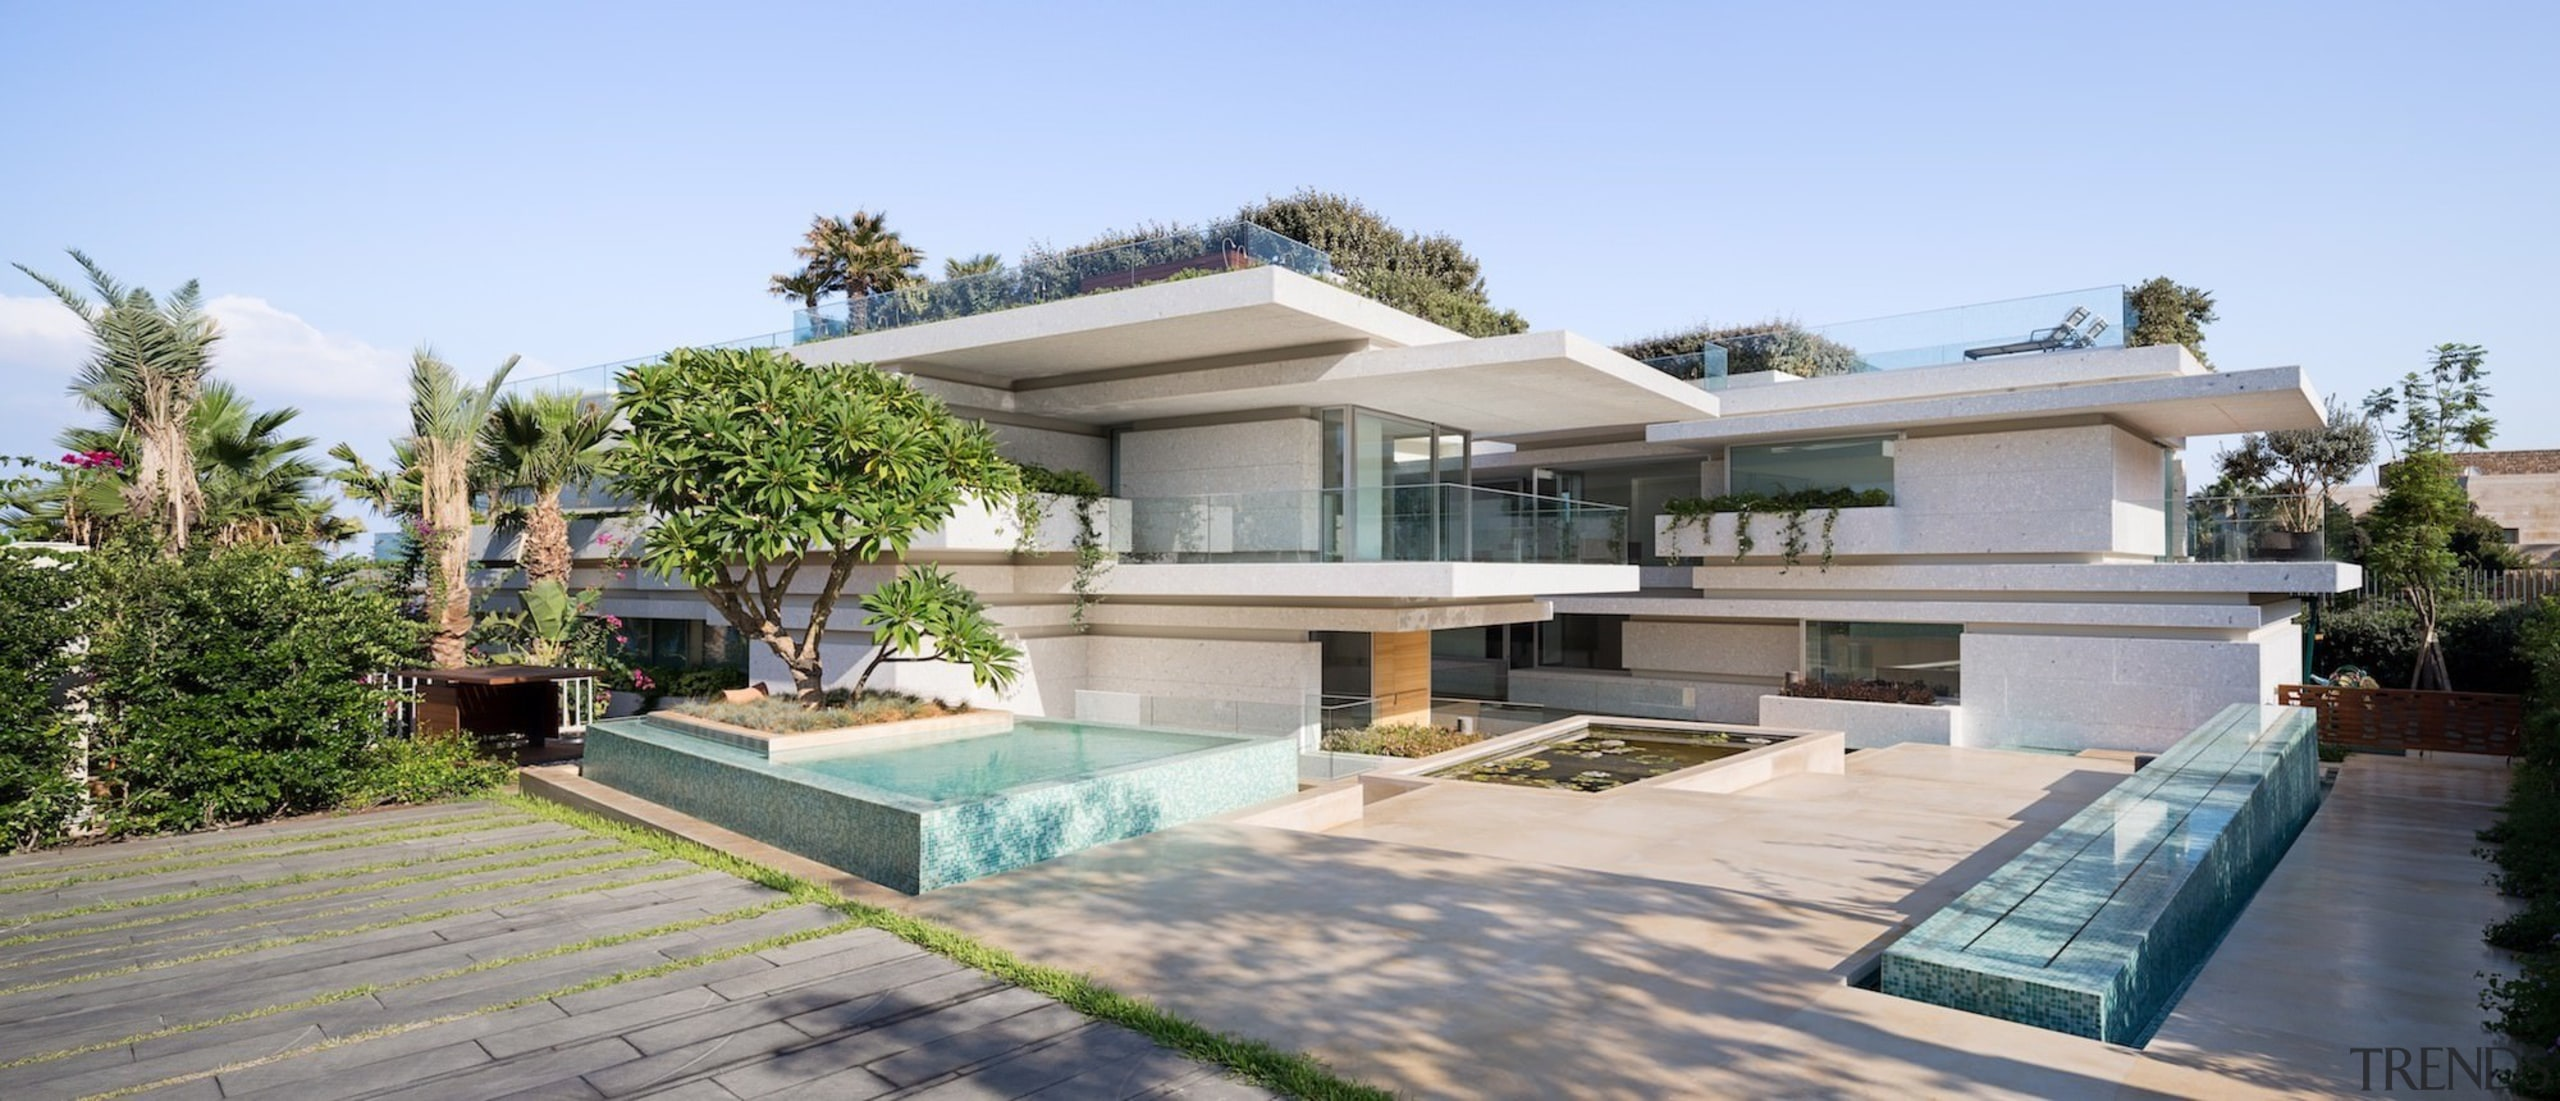 The home features multiple concrete layers, one stacked apartment, elevation, estate, facade, home, house, mansion, official residence, property, real estate, residential area, swimming pool, villa, gray, teal